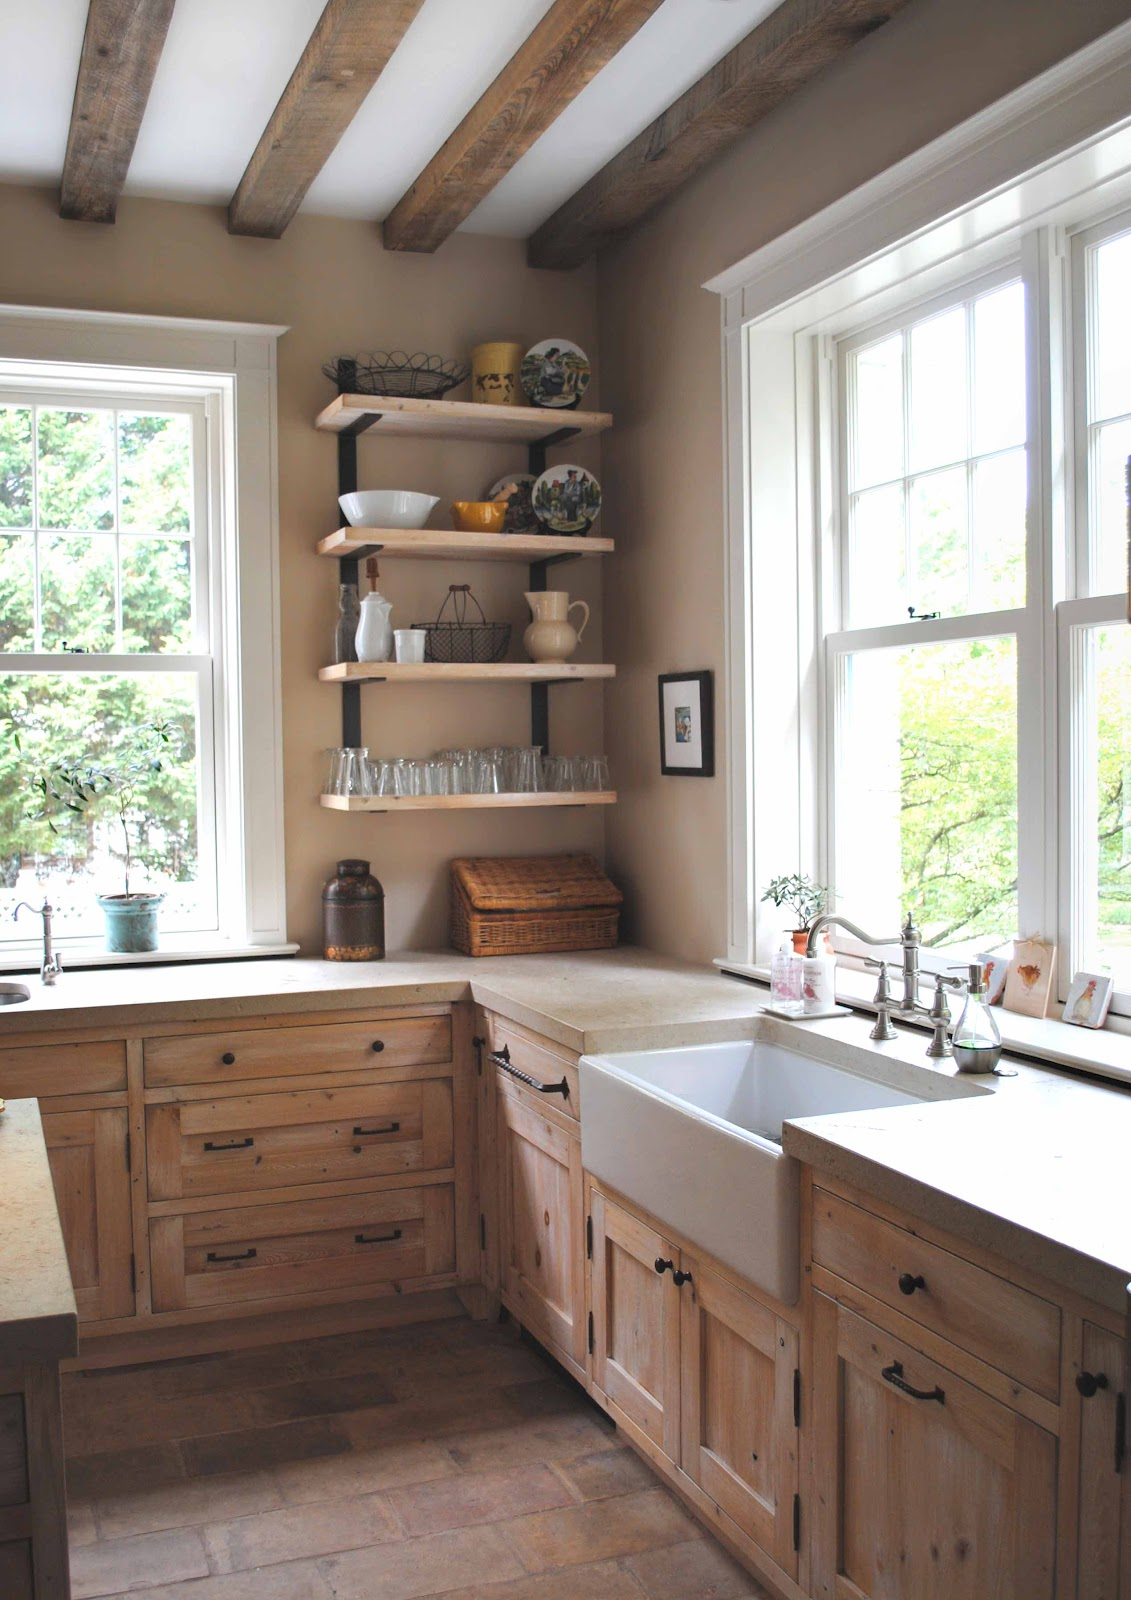 Tone on tone old and new in kitchen renovation for Country themed kitchen ideas